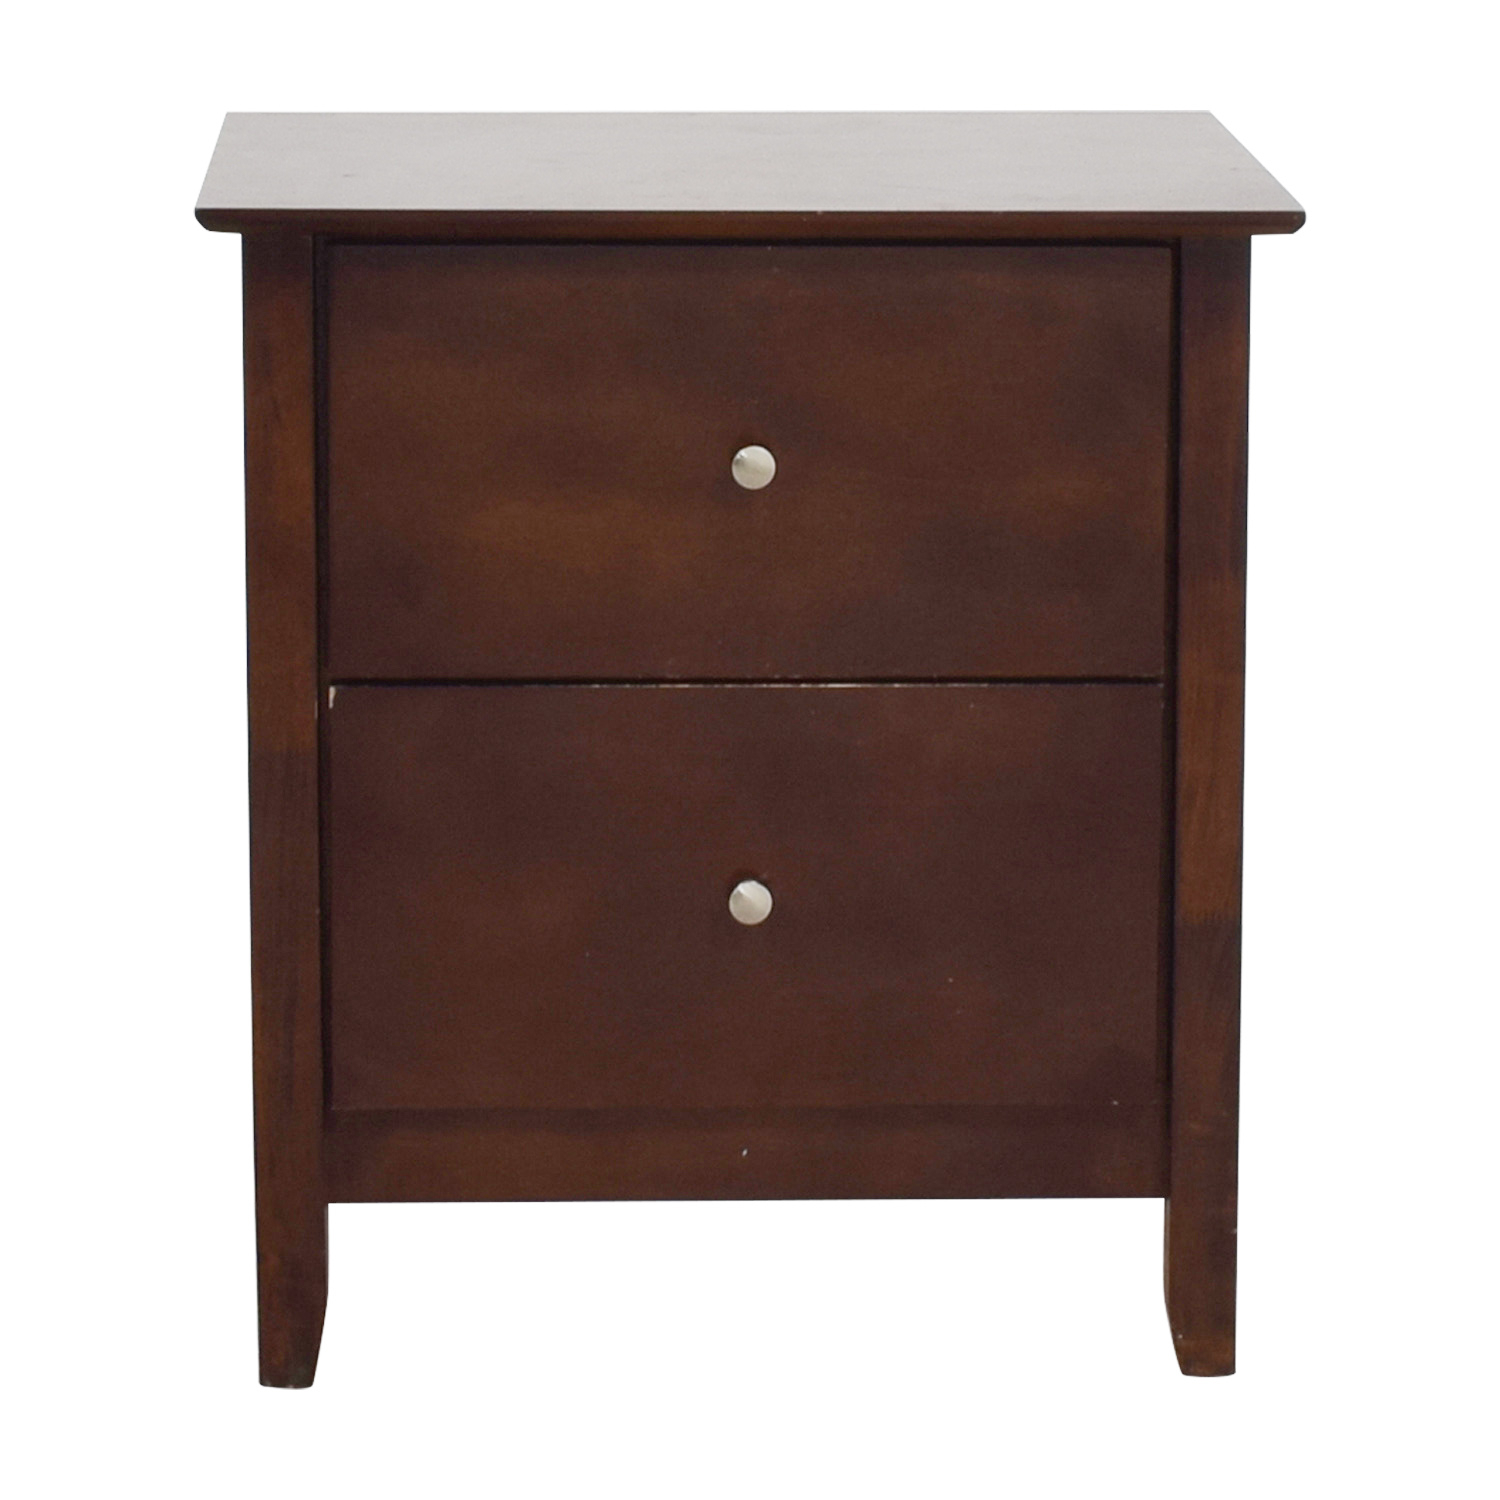 Bobs Discount Furniture Bobs Furniture Two-Drawer Nightstand dimensions